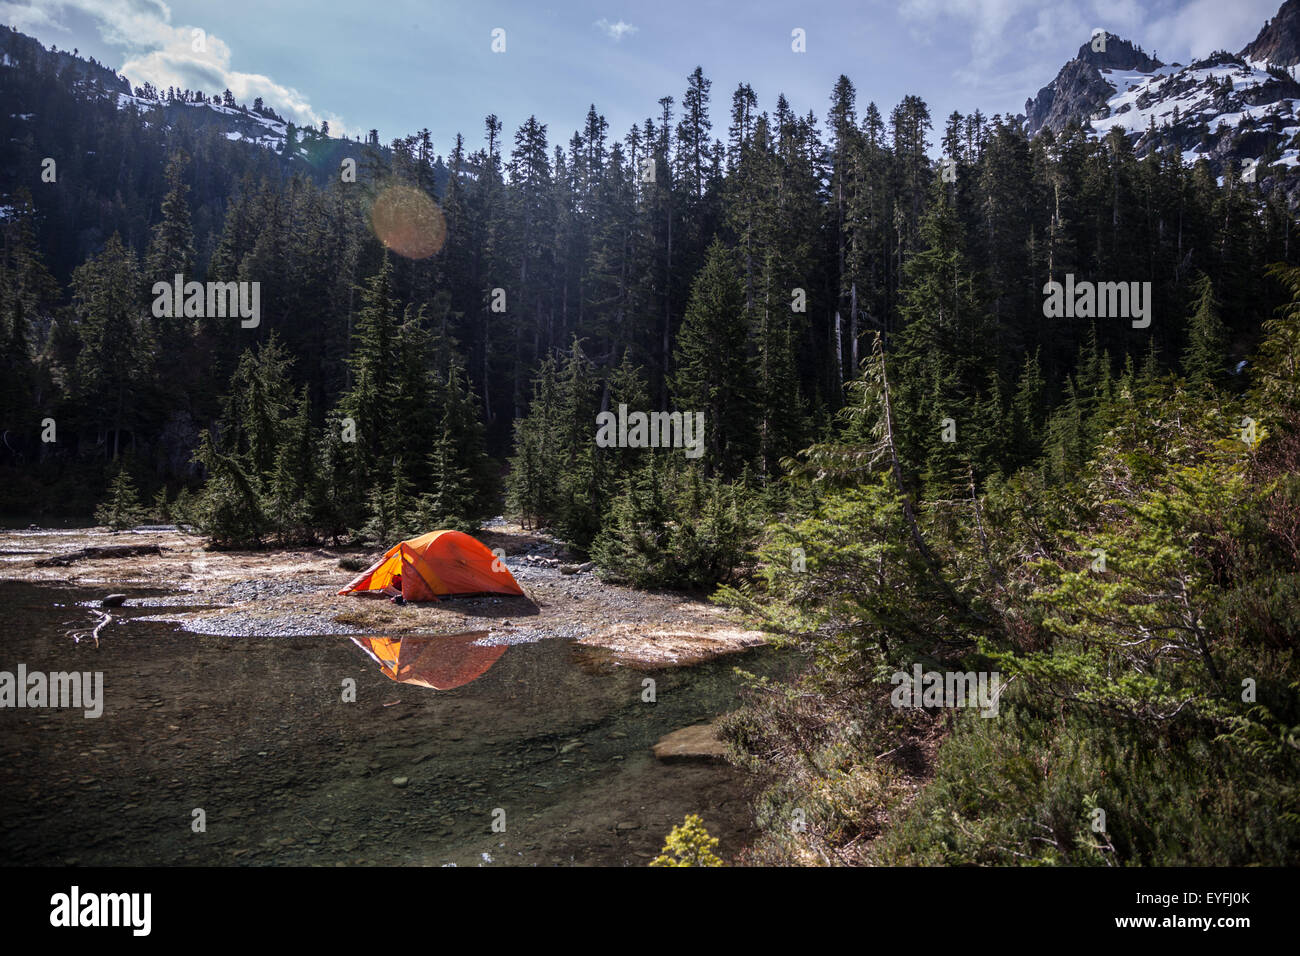 Backcountry Camping auf dem Howe Sounds Crest Trail. Stockbild